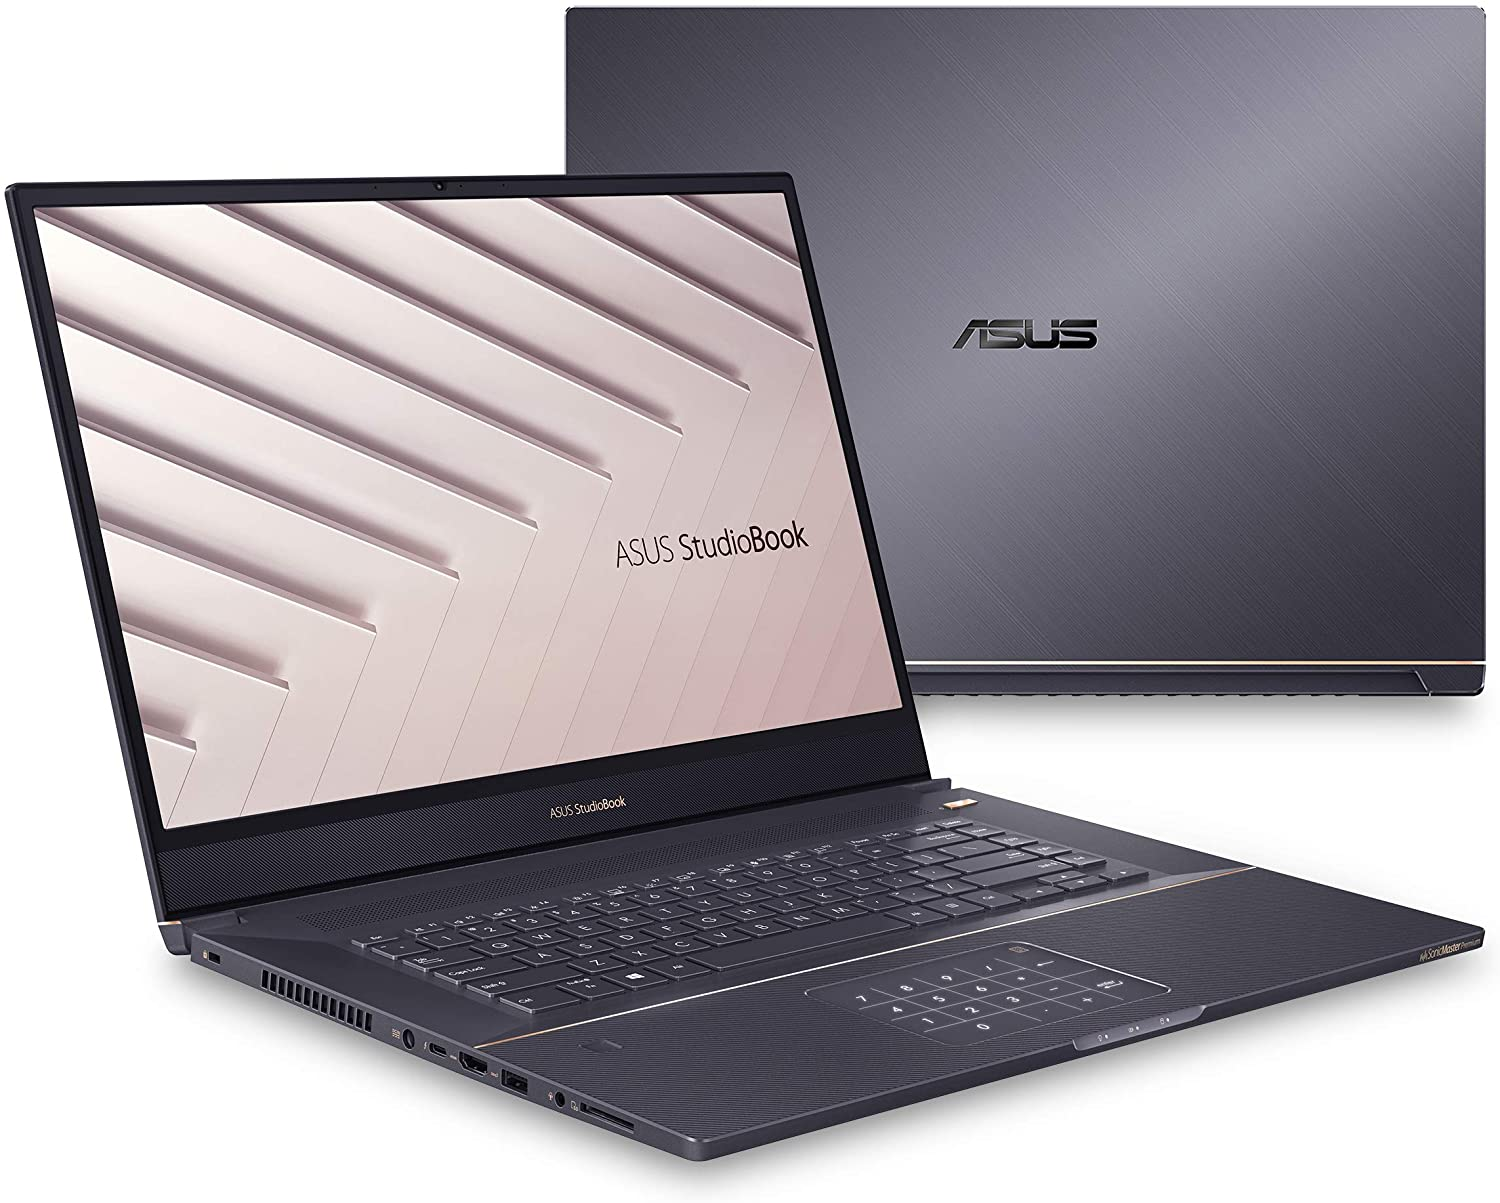 "ASUS ProArt StudioBook Pro 17 Mobile Workstation Laptop, 17"" WUXGA NanoEdge Bezel, Intel Core i7-9750H, 16GB DDR4, 1TB PCIe SSD, Nvidia Quadro RTX 3000 Max Q, Windows 10 Pro, Star Grey, W700G3T-XS77"